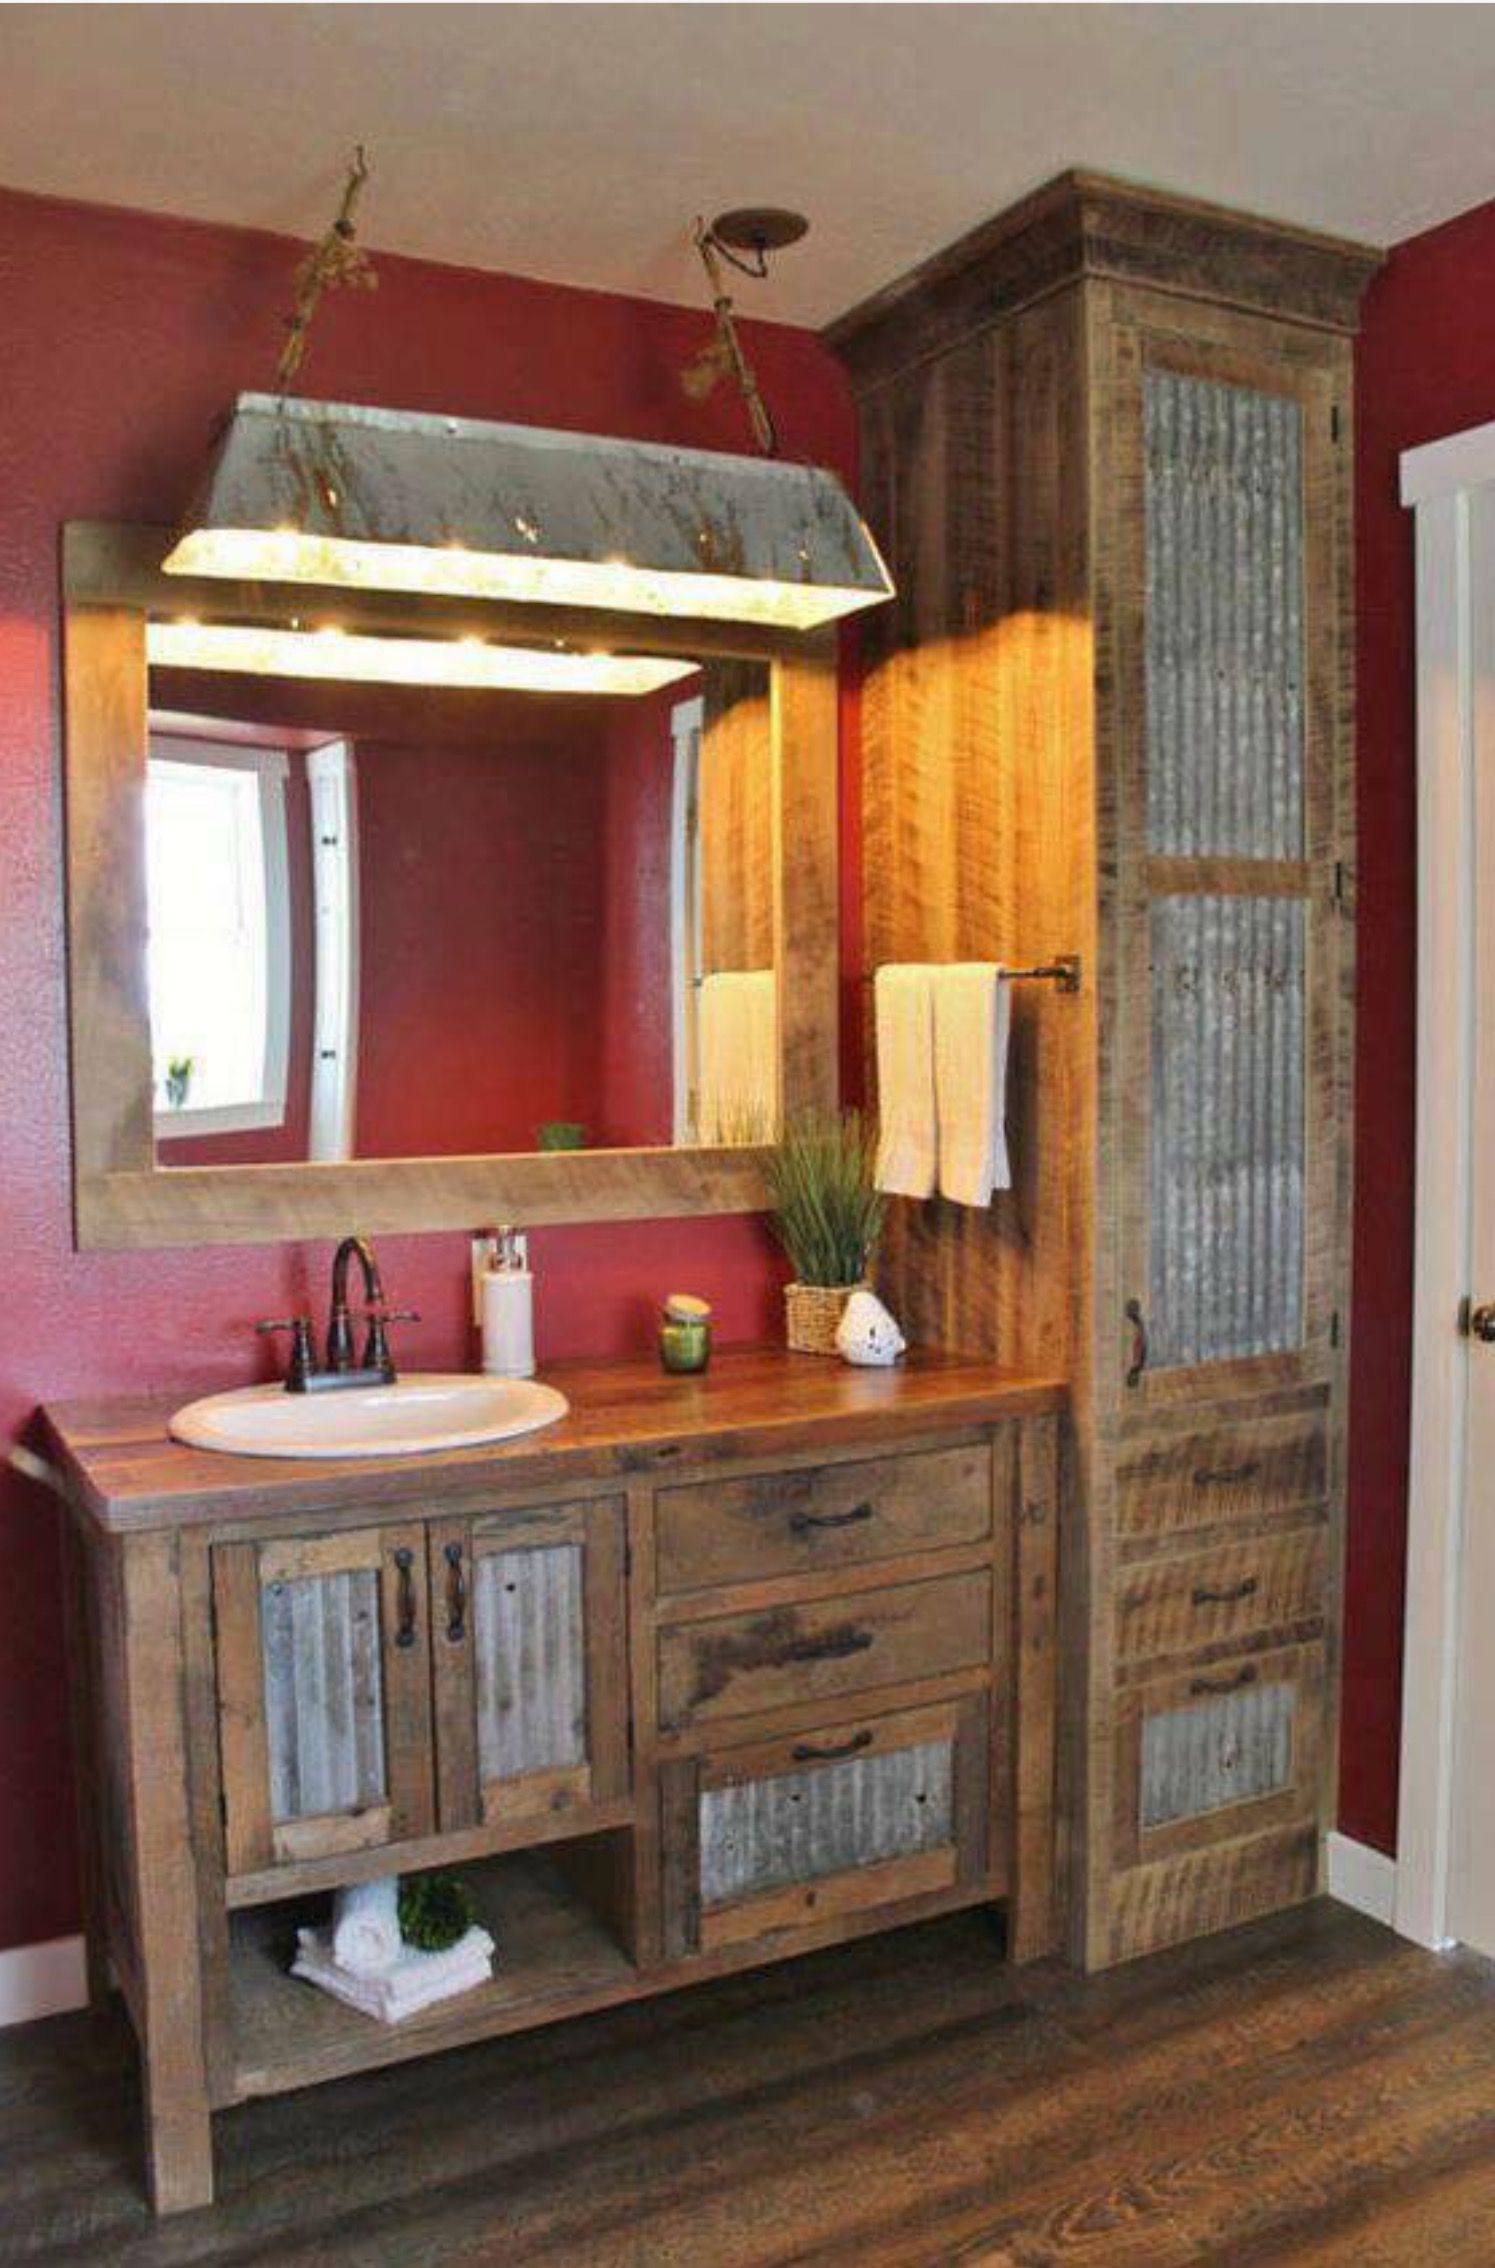 Wood Profits - Rustic Vanity 48 Reclaimed Barn Wood Vanity w/Barn Tin by  Keeriah - Discover How You Can Start A Woodworking Business From Home  Easily in 7 ...